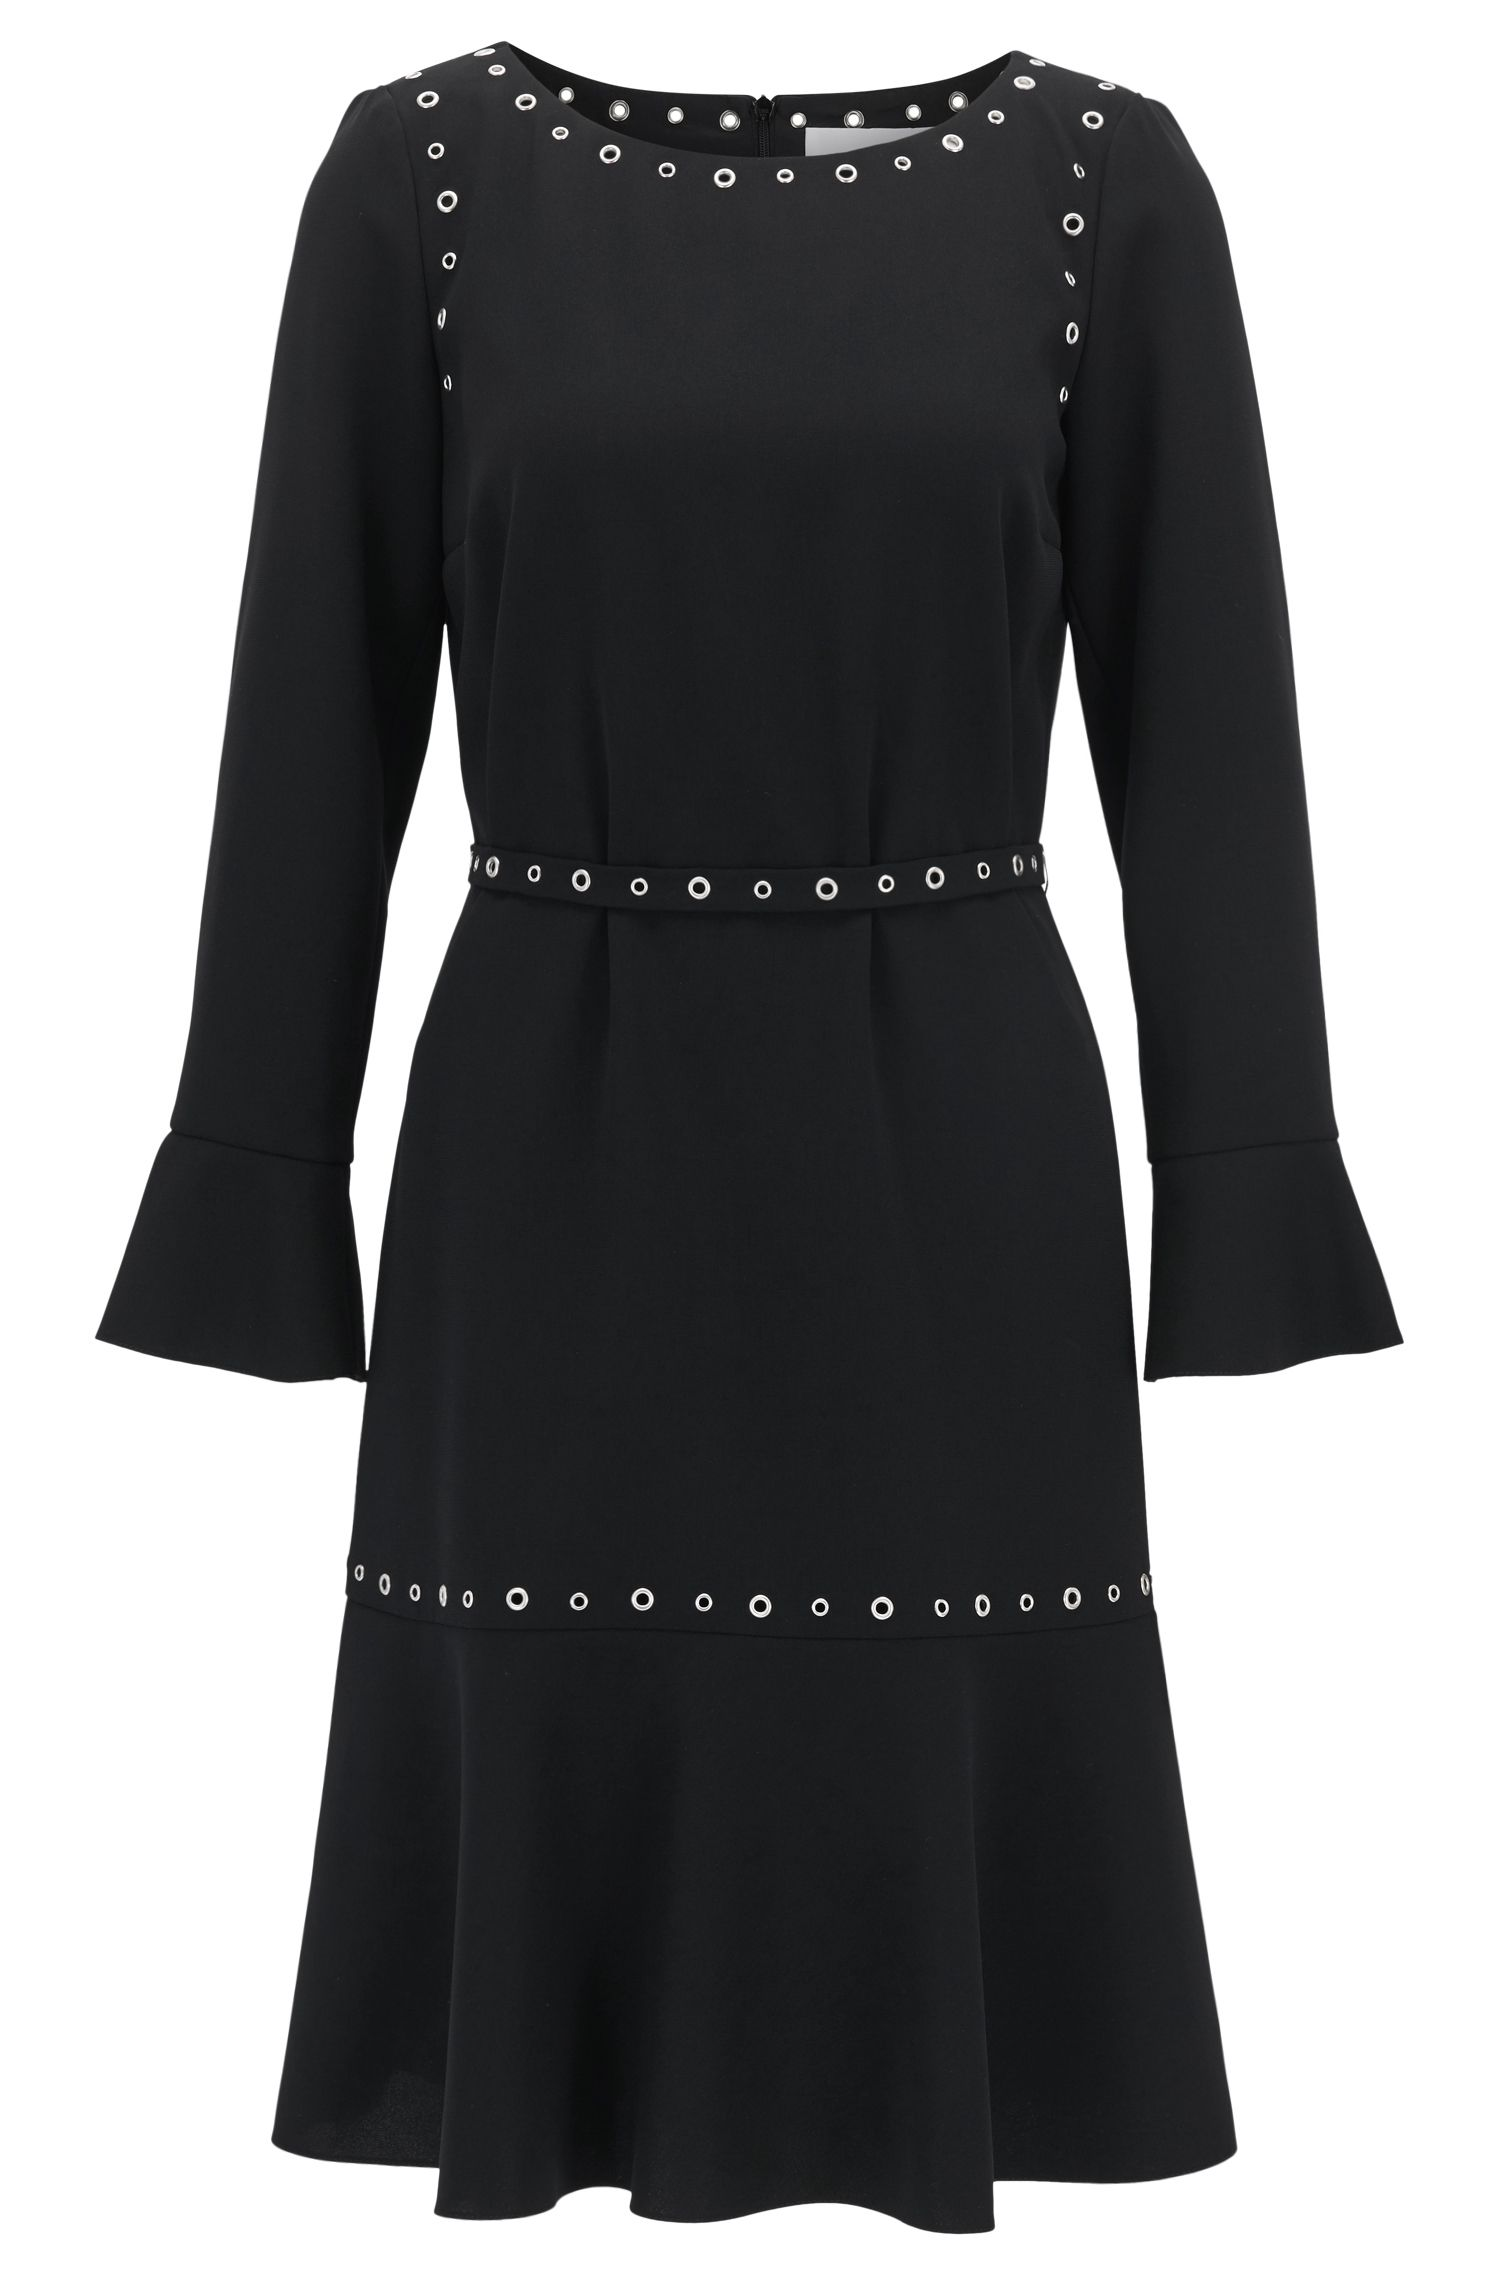 Long-sleeved crêpe dress with hardware details